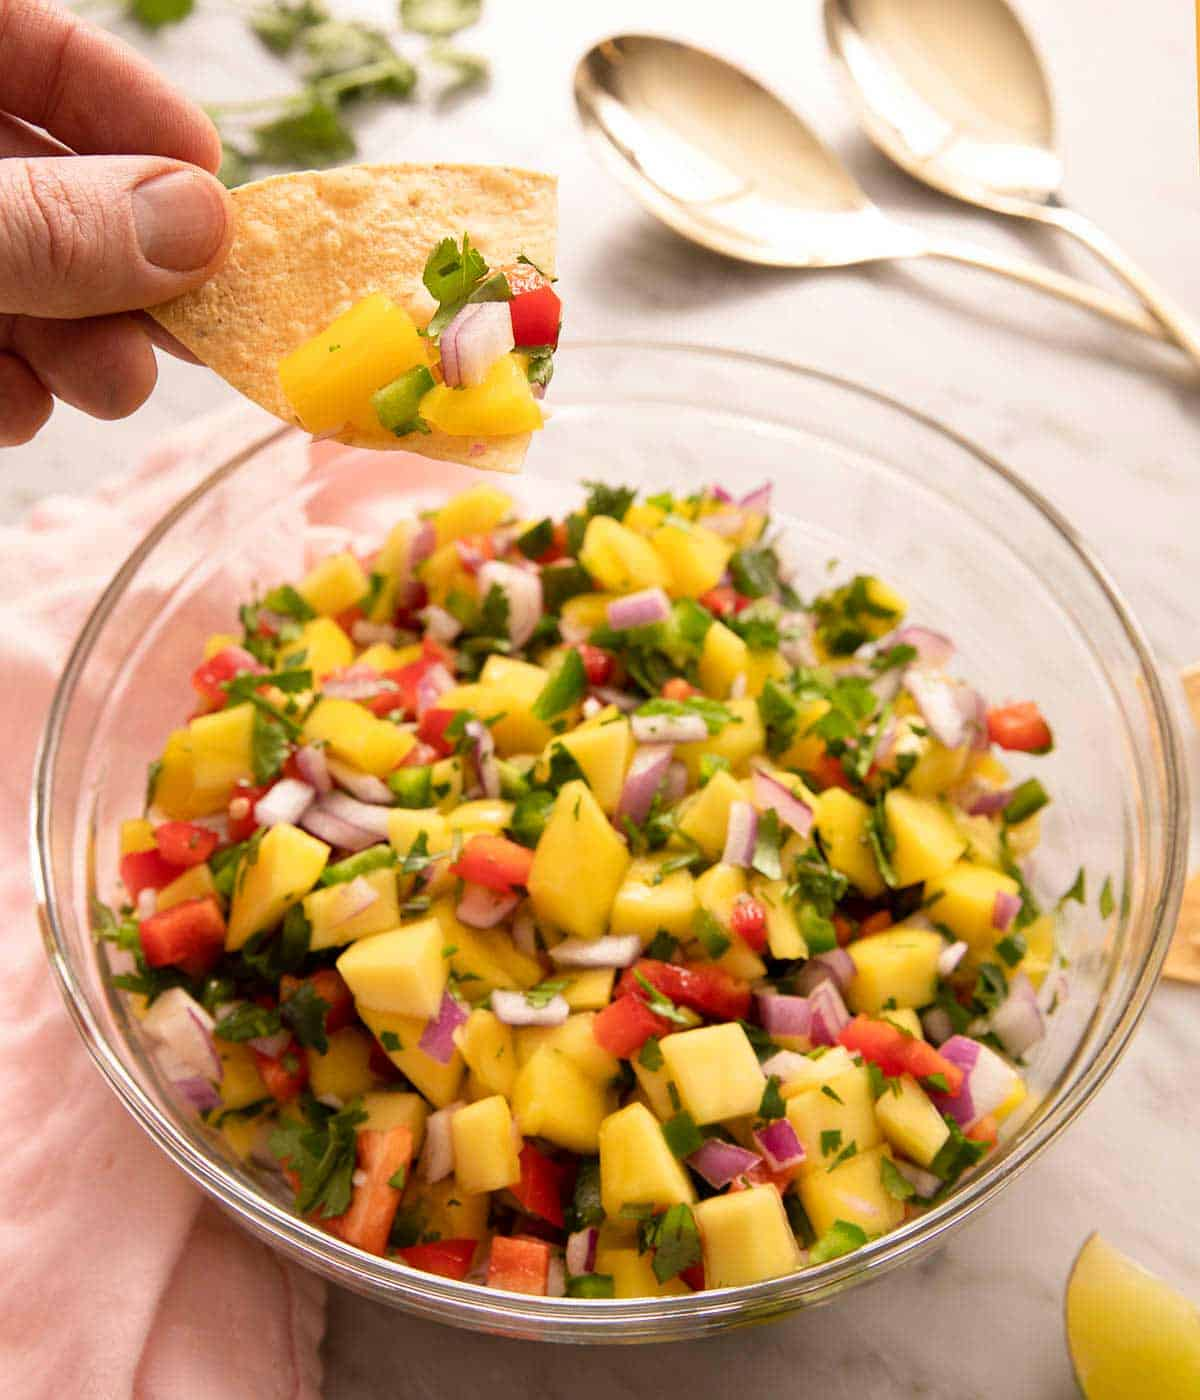 A chip picking up some mango salsa from a bowl